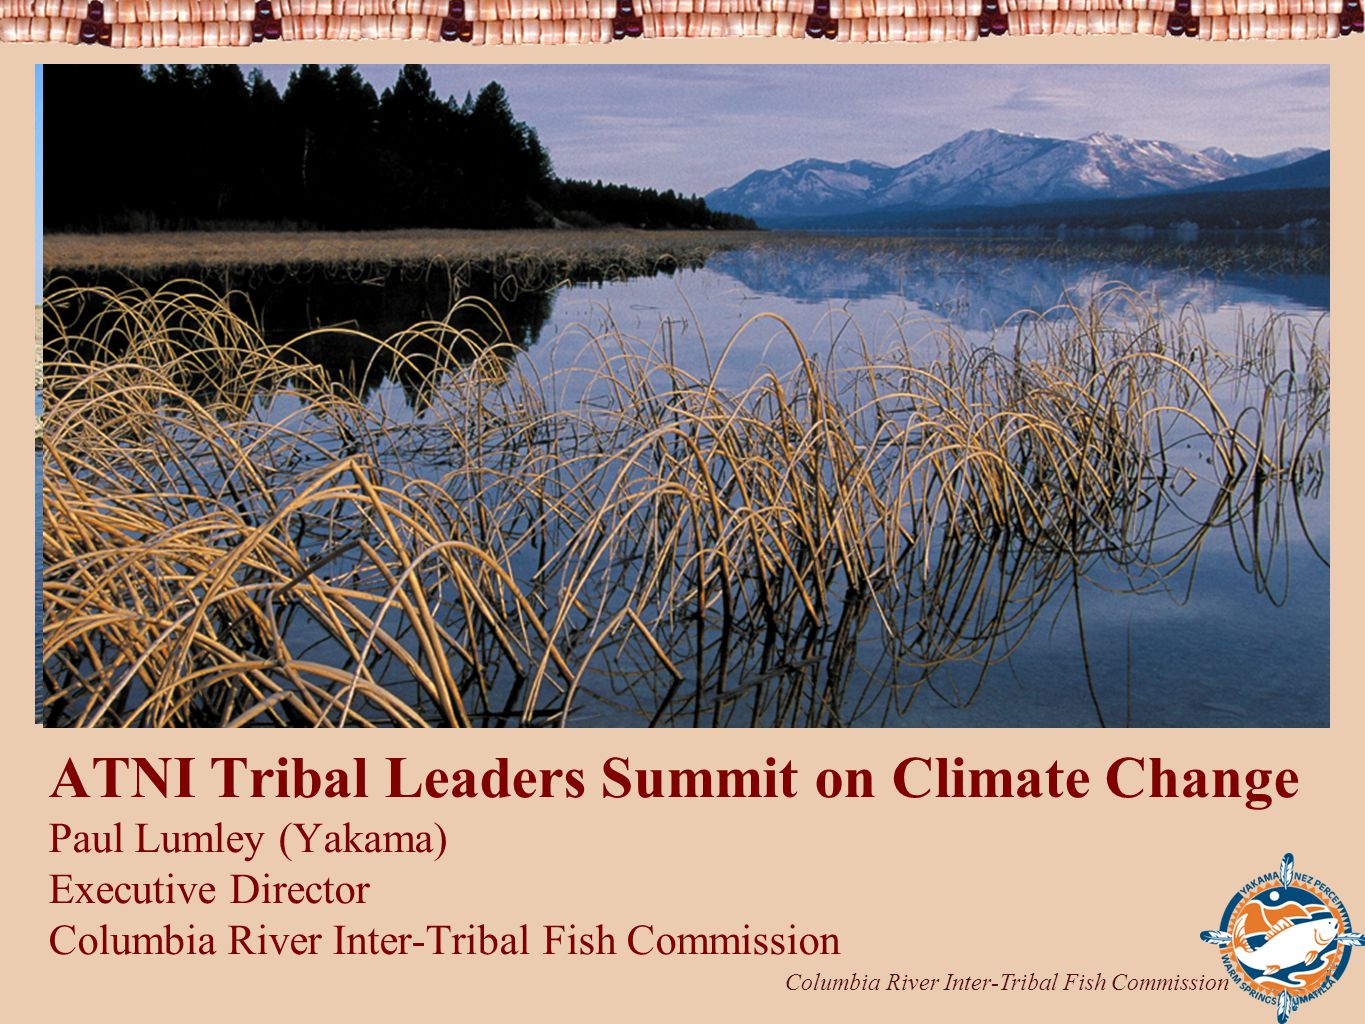 Columbia River Inter-Tribal Fish Commission 1 ATNI Tribal Leaders Summit on Climate Change Paul Lumley (Yakama) Executive Director Columbia River Inter-Tribal Fish Commission